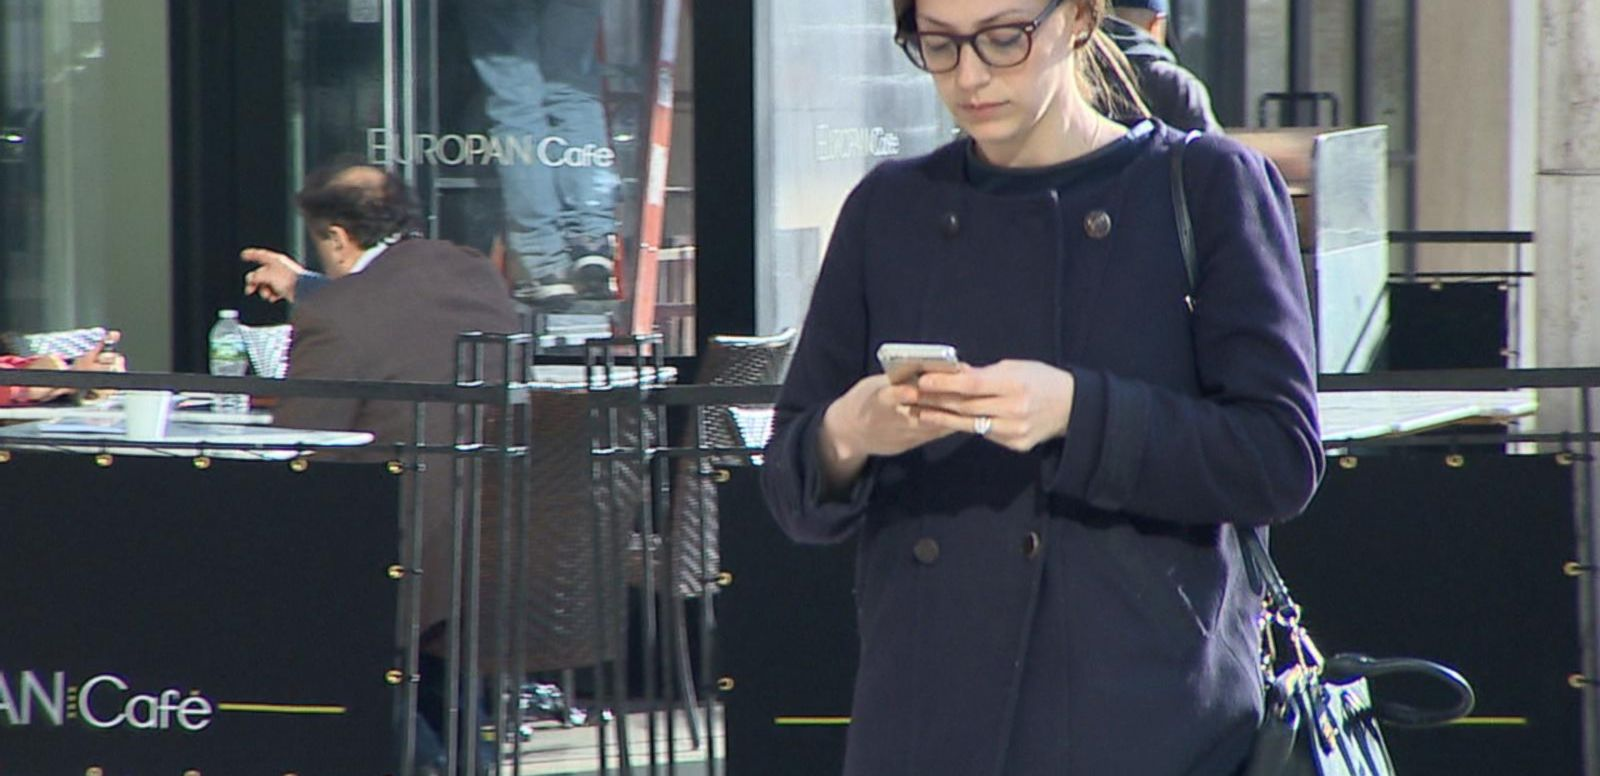 VIDEO: Dangers of Texting and Walking Dangers on the Rise: New Study